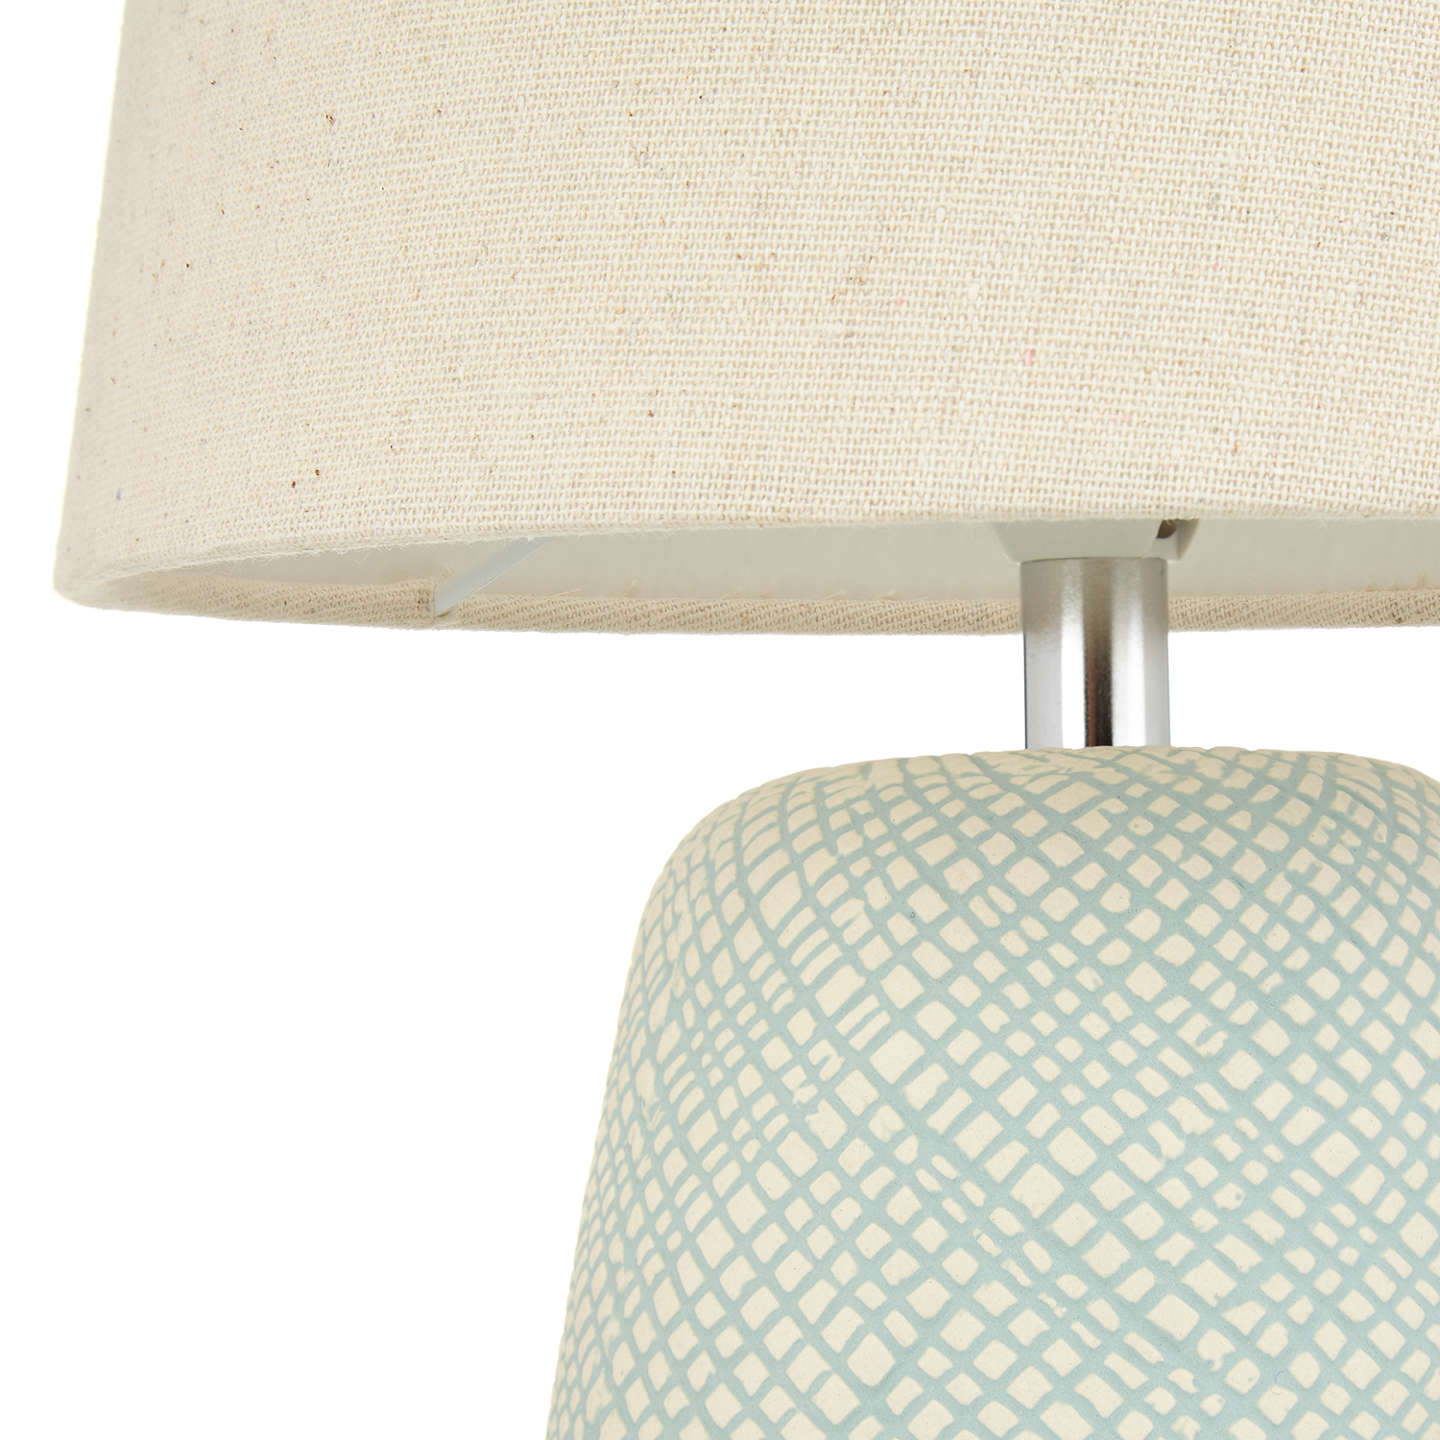 BuyJohn Lewis Iona Small Table Lamp, Teal Online at johnlewis.com